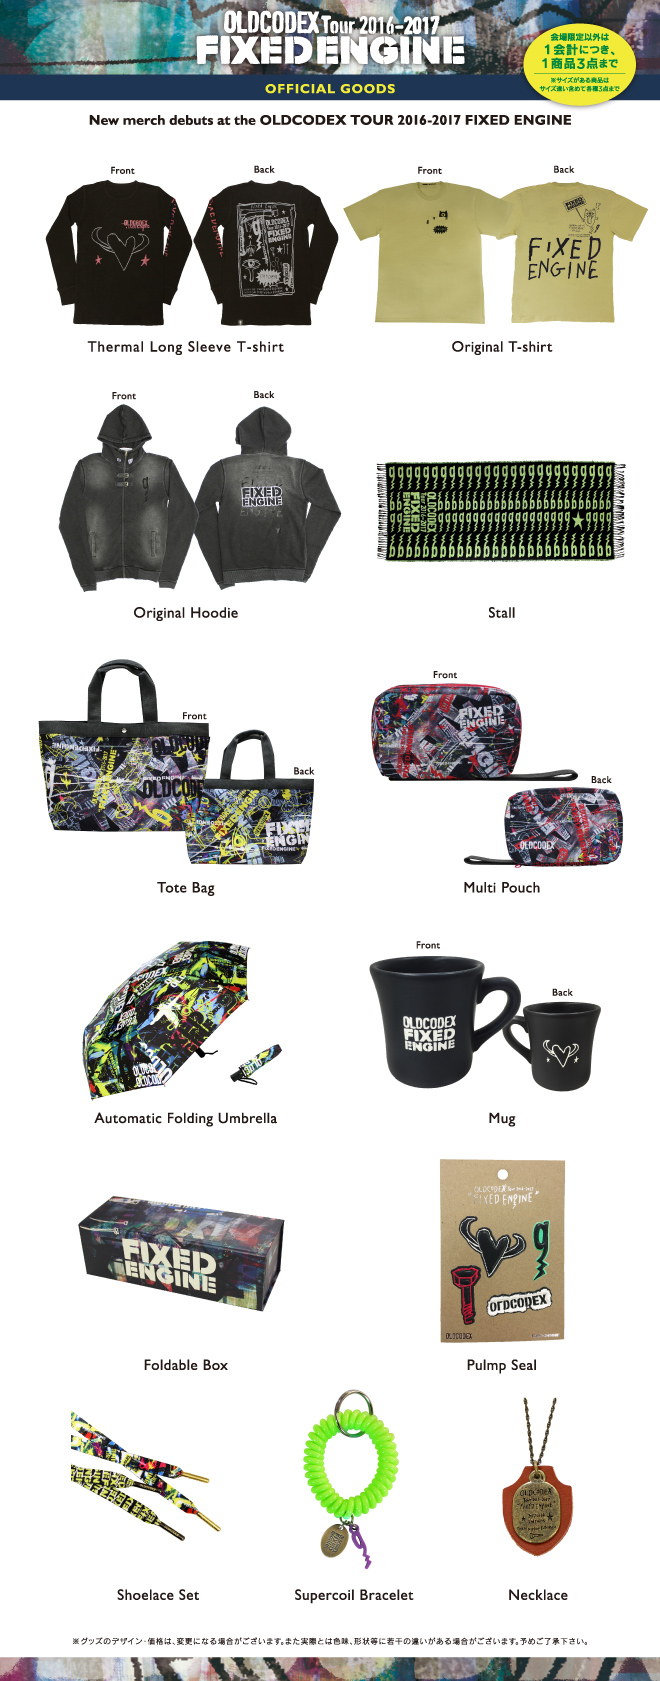 """OLDCODEX Tour 2016-2017 """"FIXED ENGINE"""" OFFICIAL GOODS"""